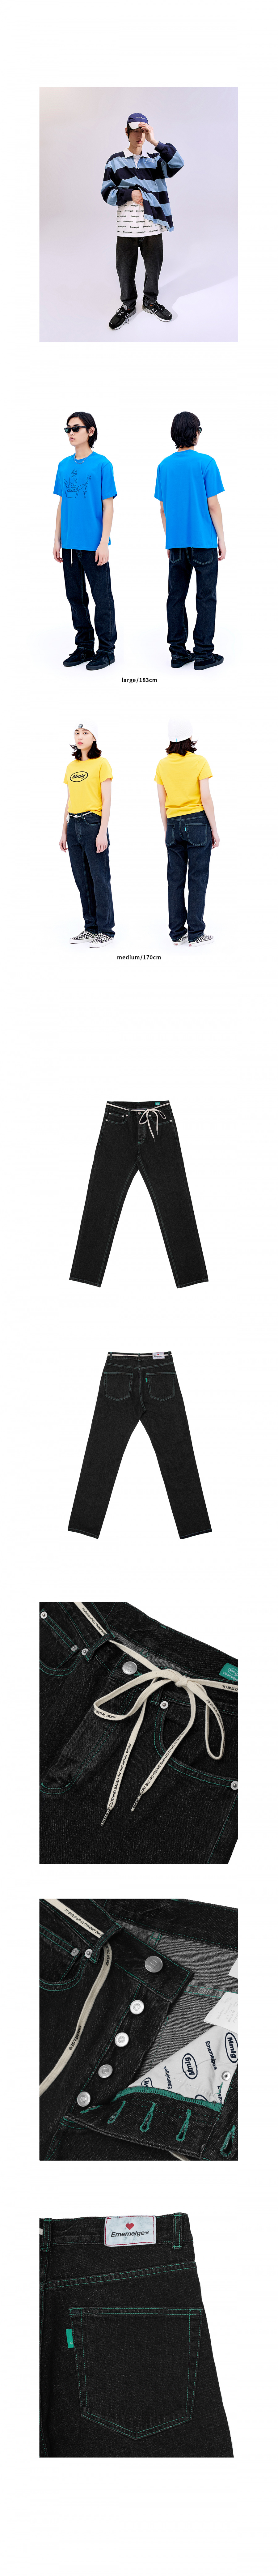 팔칠엠엠(87MM) [Mmlg] STRAIGHT JEANS (ALMOST BLACK)